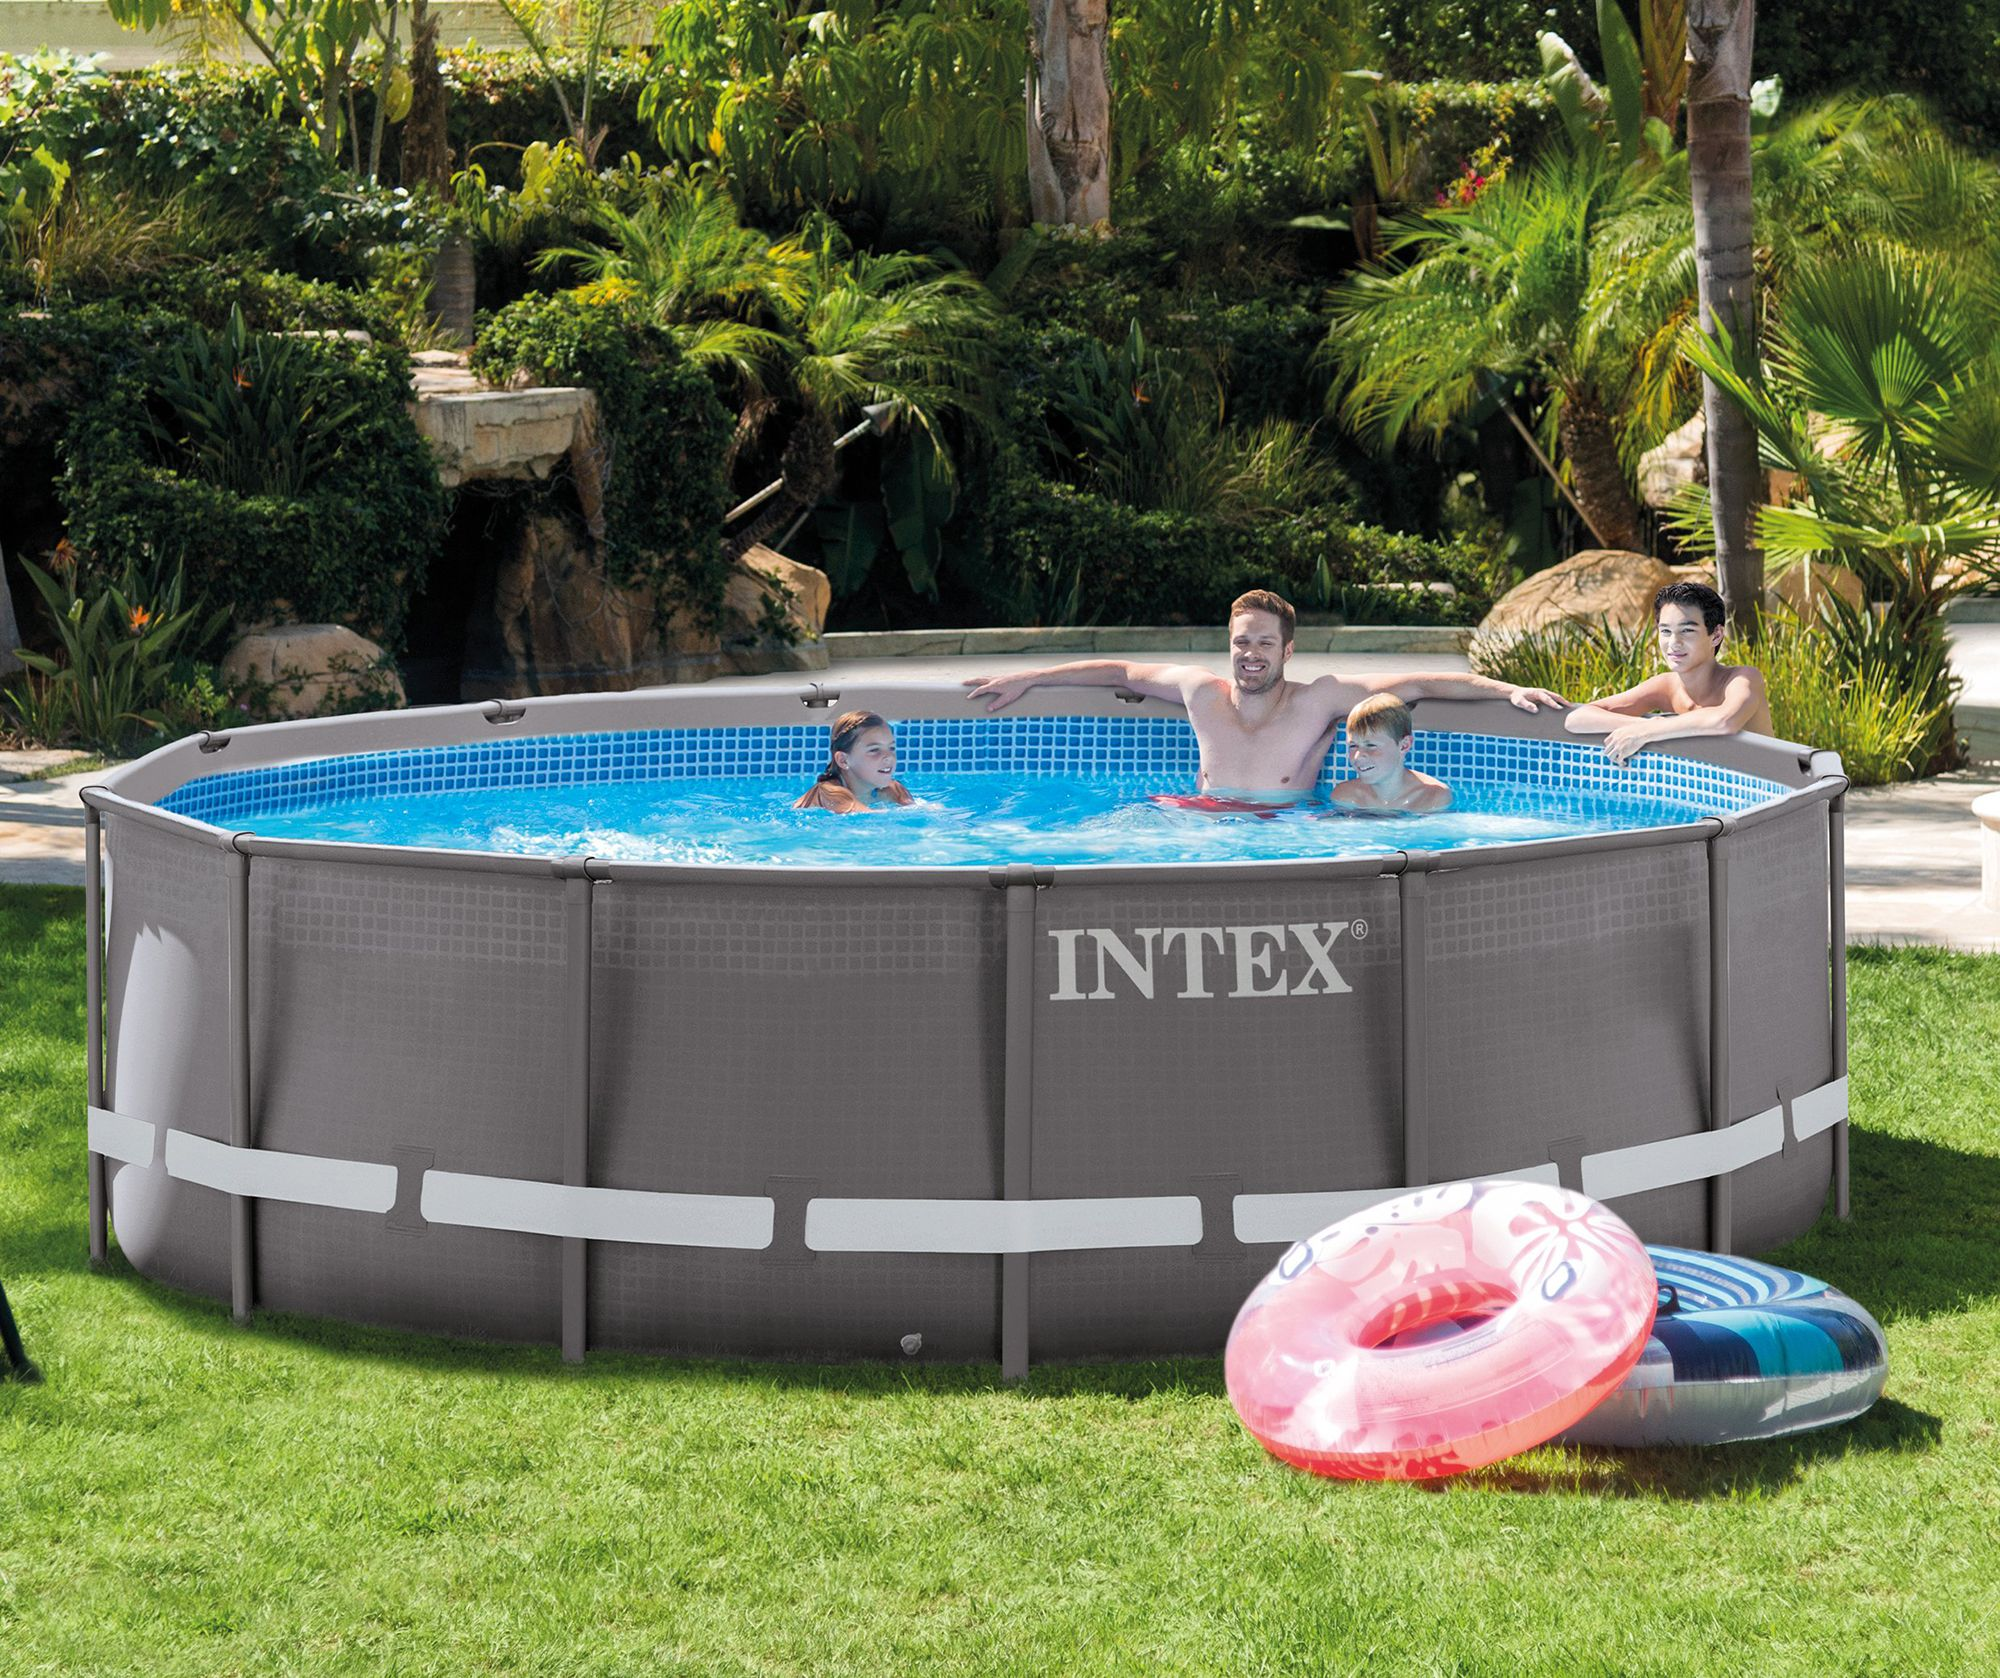 This Pool Measuring 14 Feet In Diameter And 3 5 Feet Tall Is Big Enough For Everyone To Enjoy Best Above Ground Pool Intex Above Ground Pools In Ground Pools